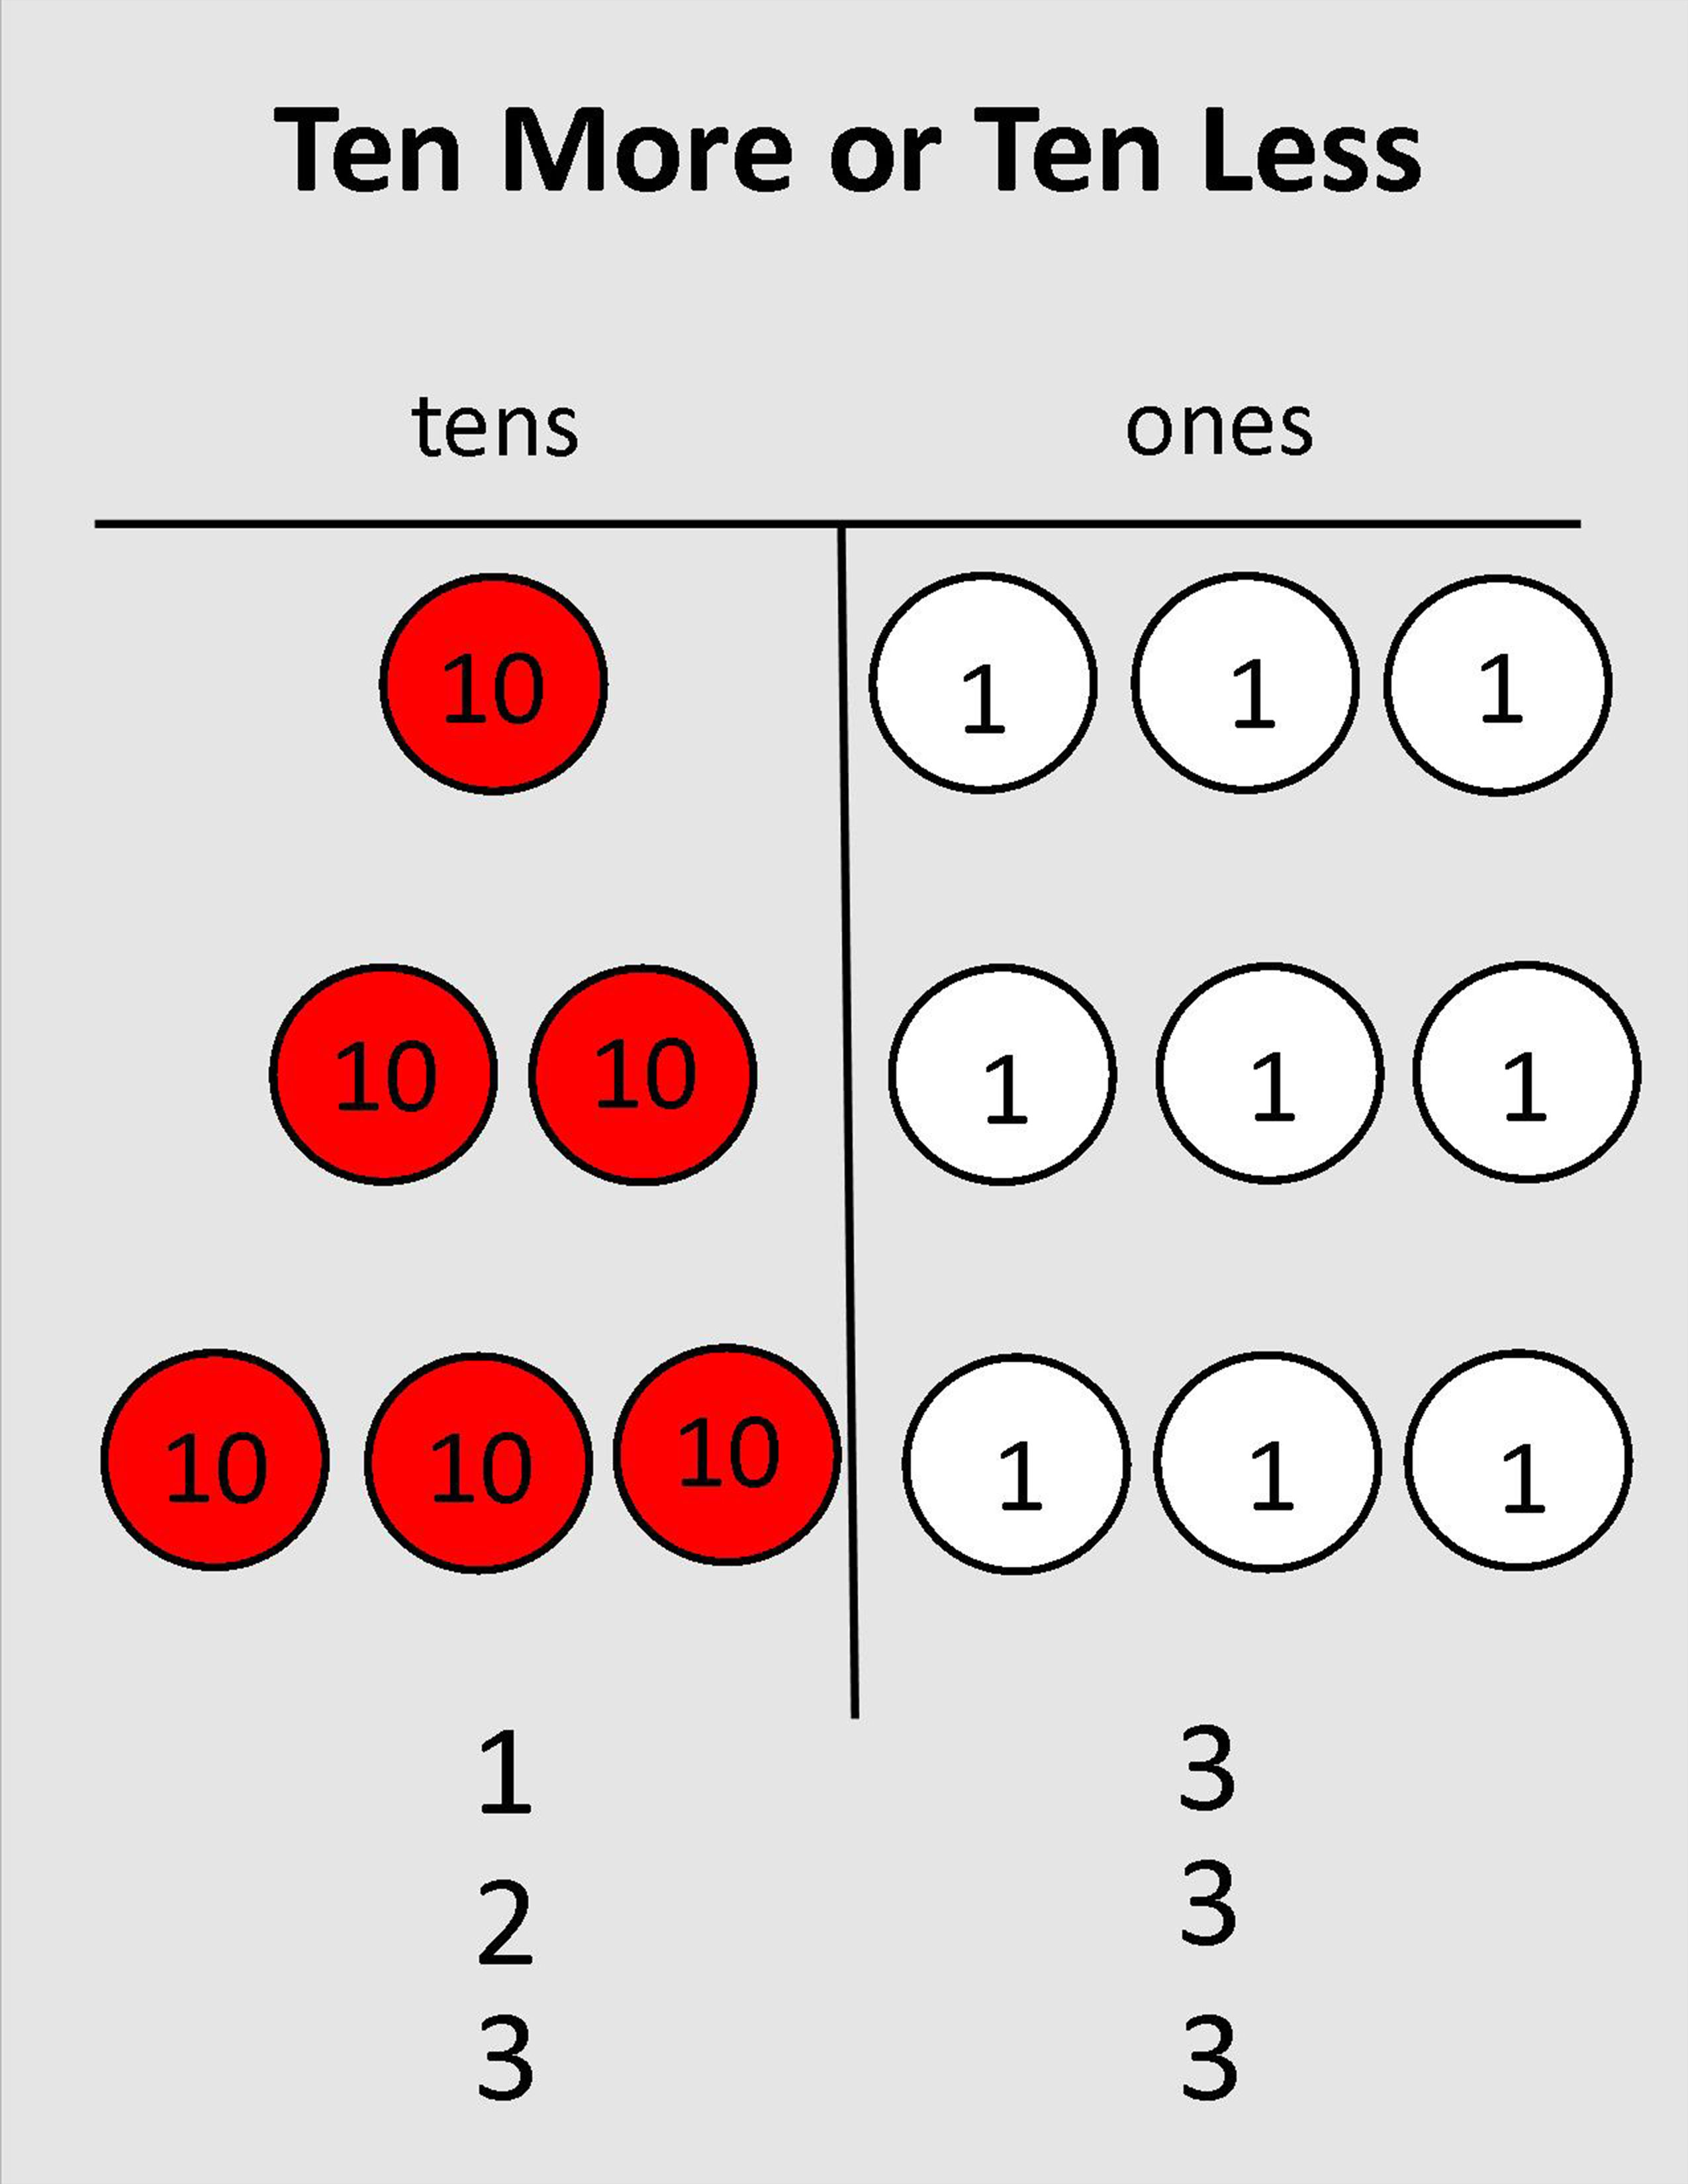 10 More Or 10 Less Model And Number Disks Ignited Math Lesson Plans Printable Worksheets Math Lessons [ 3300 x 2550 Pixel ]